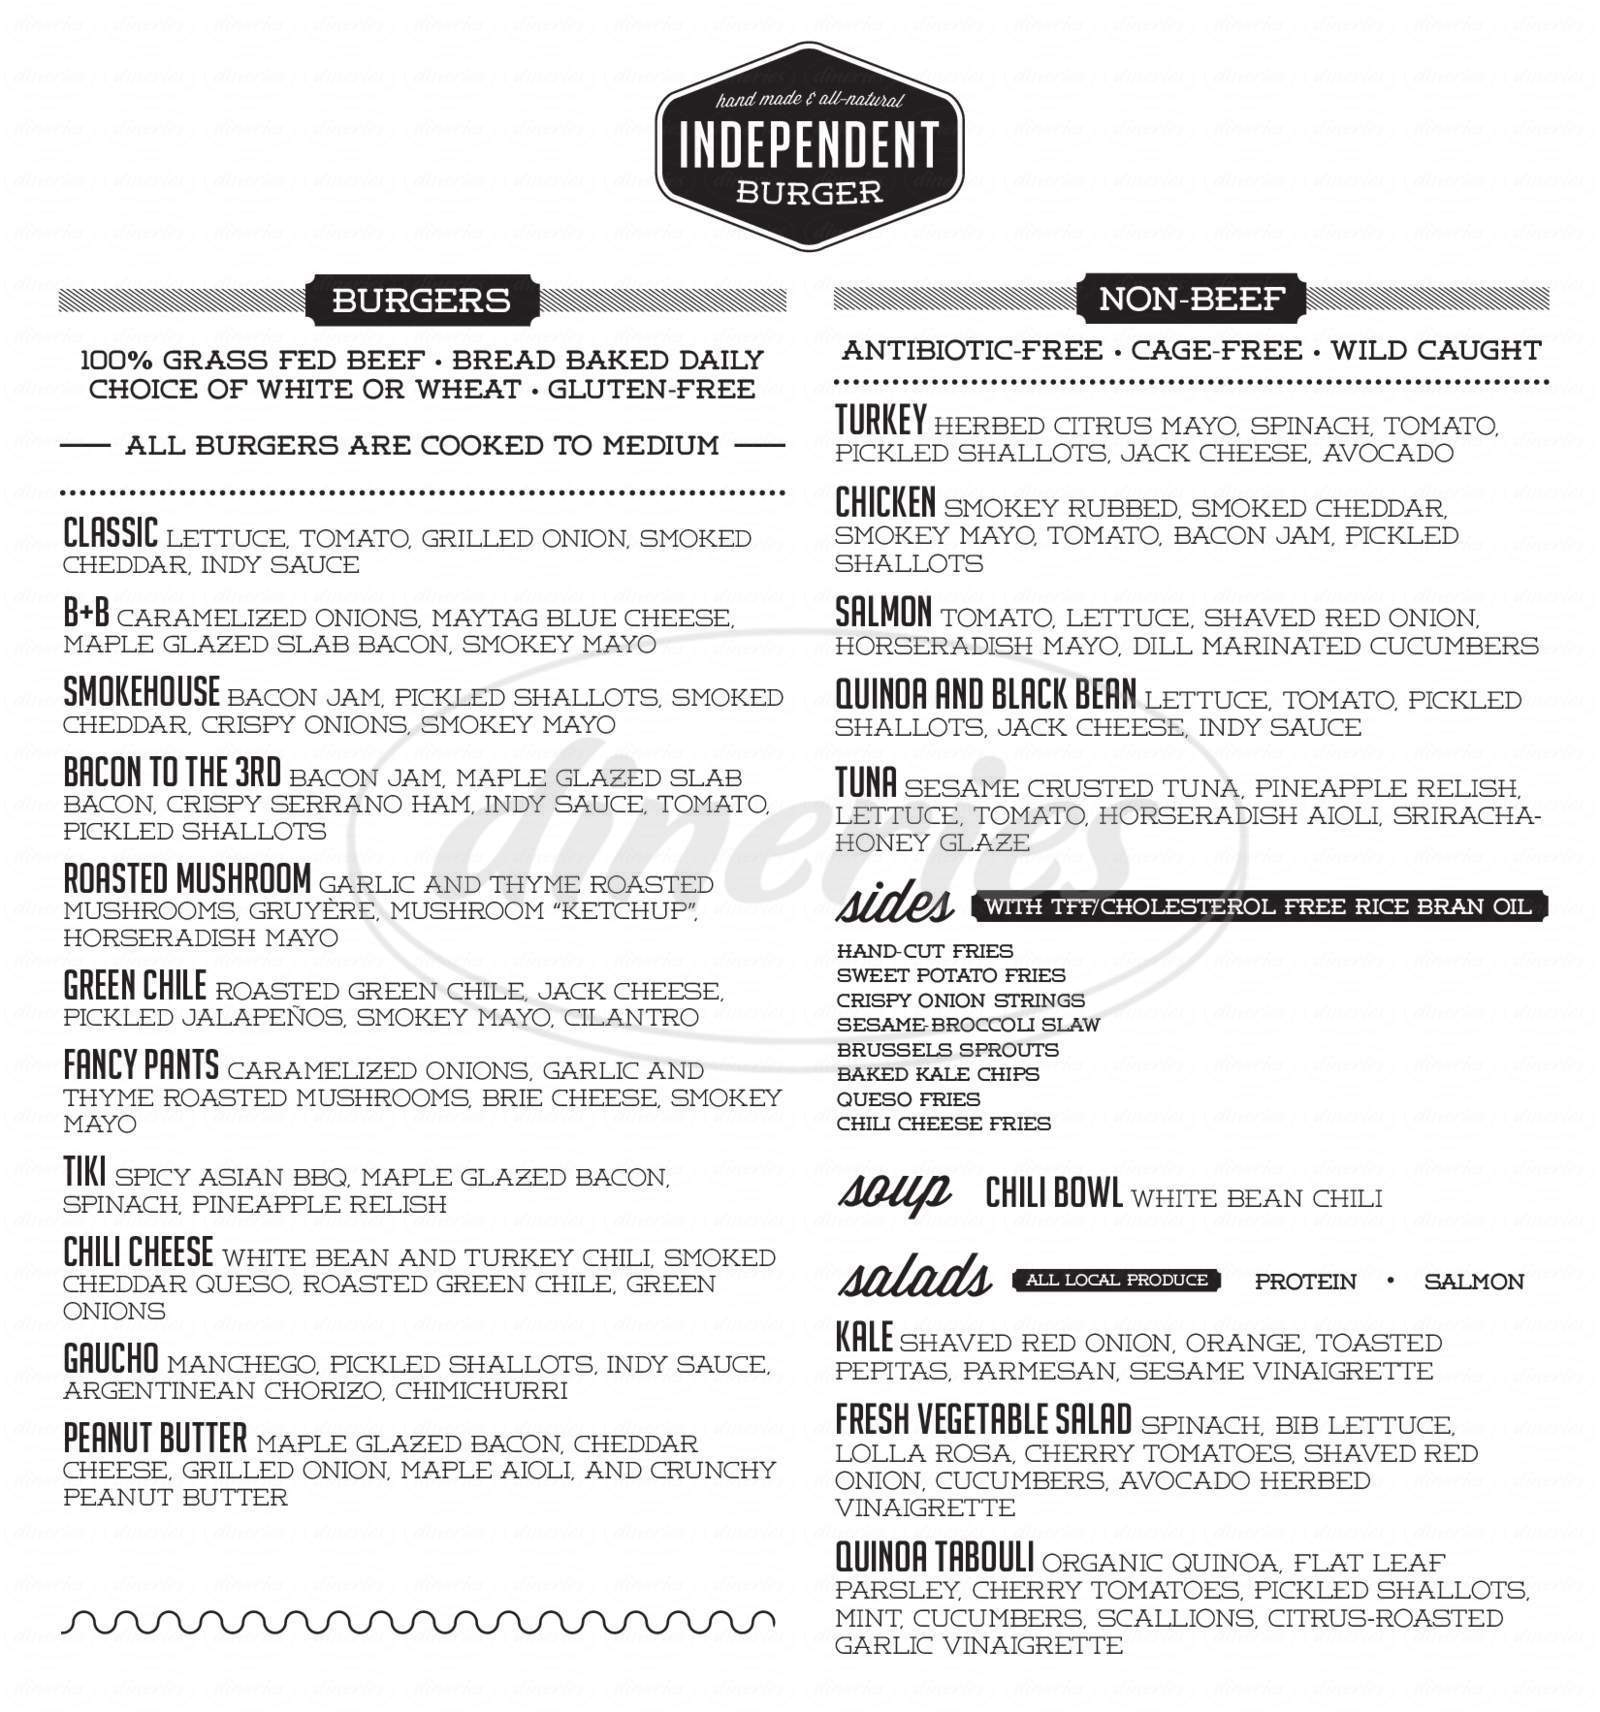 menu for Independent Burger